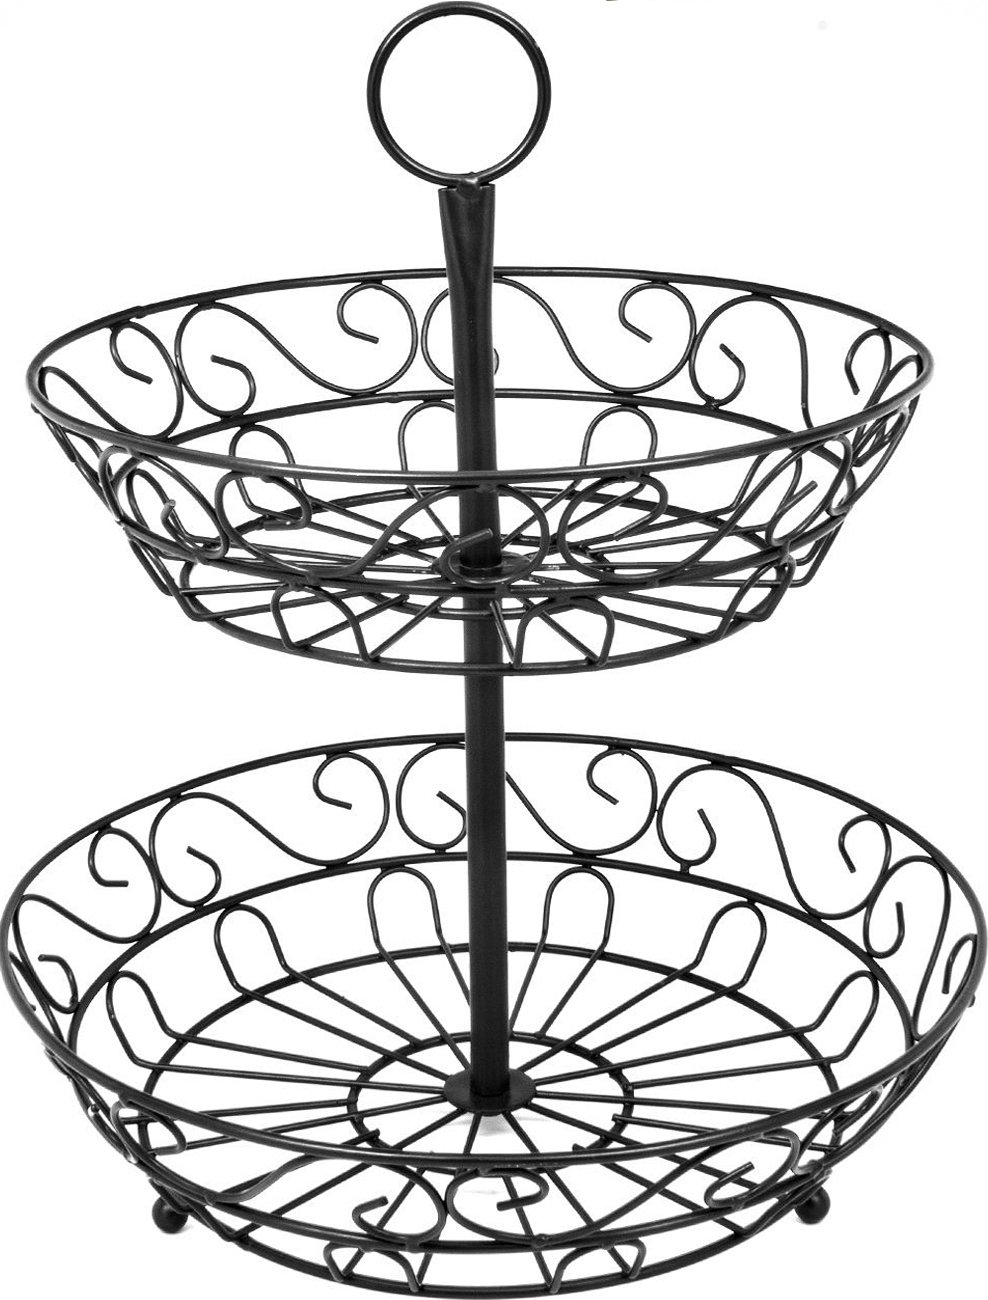 Lovely Amazon.com: Sorbus 2 Tier Countertop Fruit Basket Holder U0026 Decorative Bowl  Standu2014Perfect For Fruit, Vegetables, Snacks, Household Items, And Much More  ...